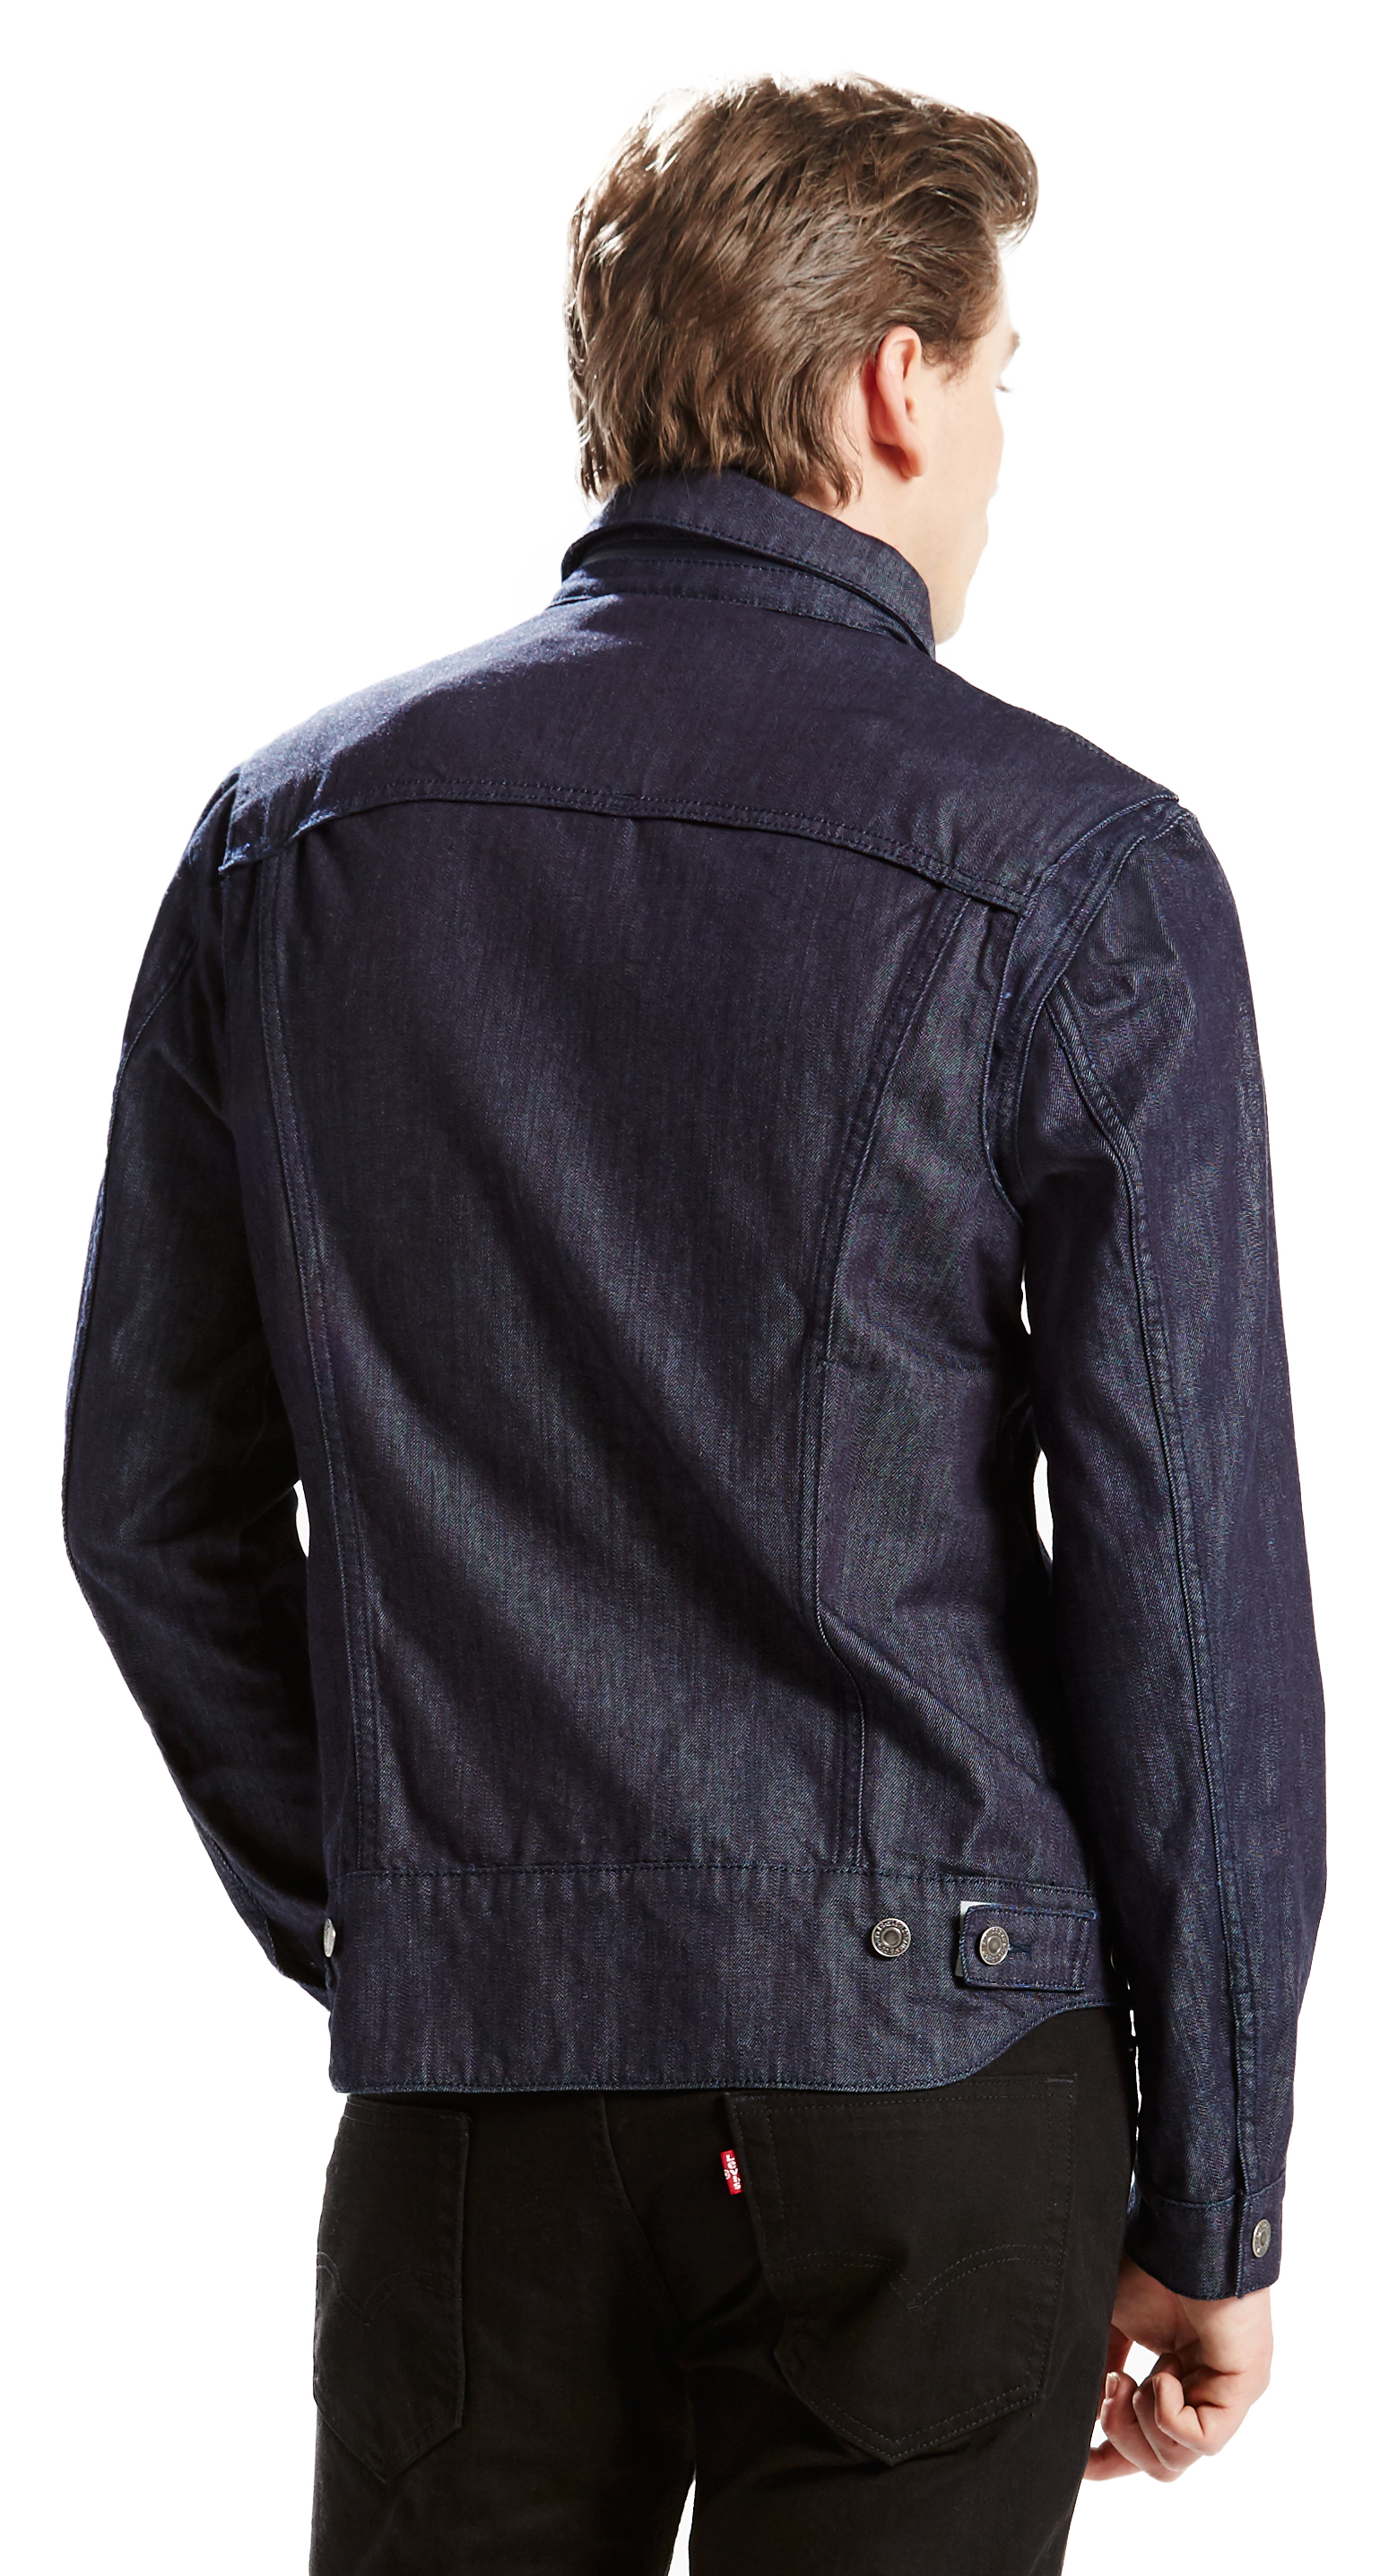 Levis Commuter Jacket | Levis Commuter Jeans Sale | Cycling Commuter Jacket